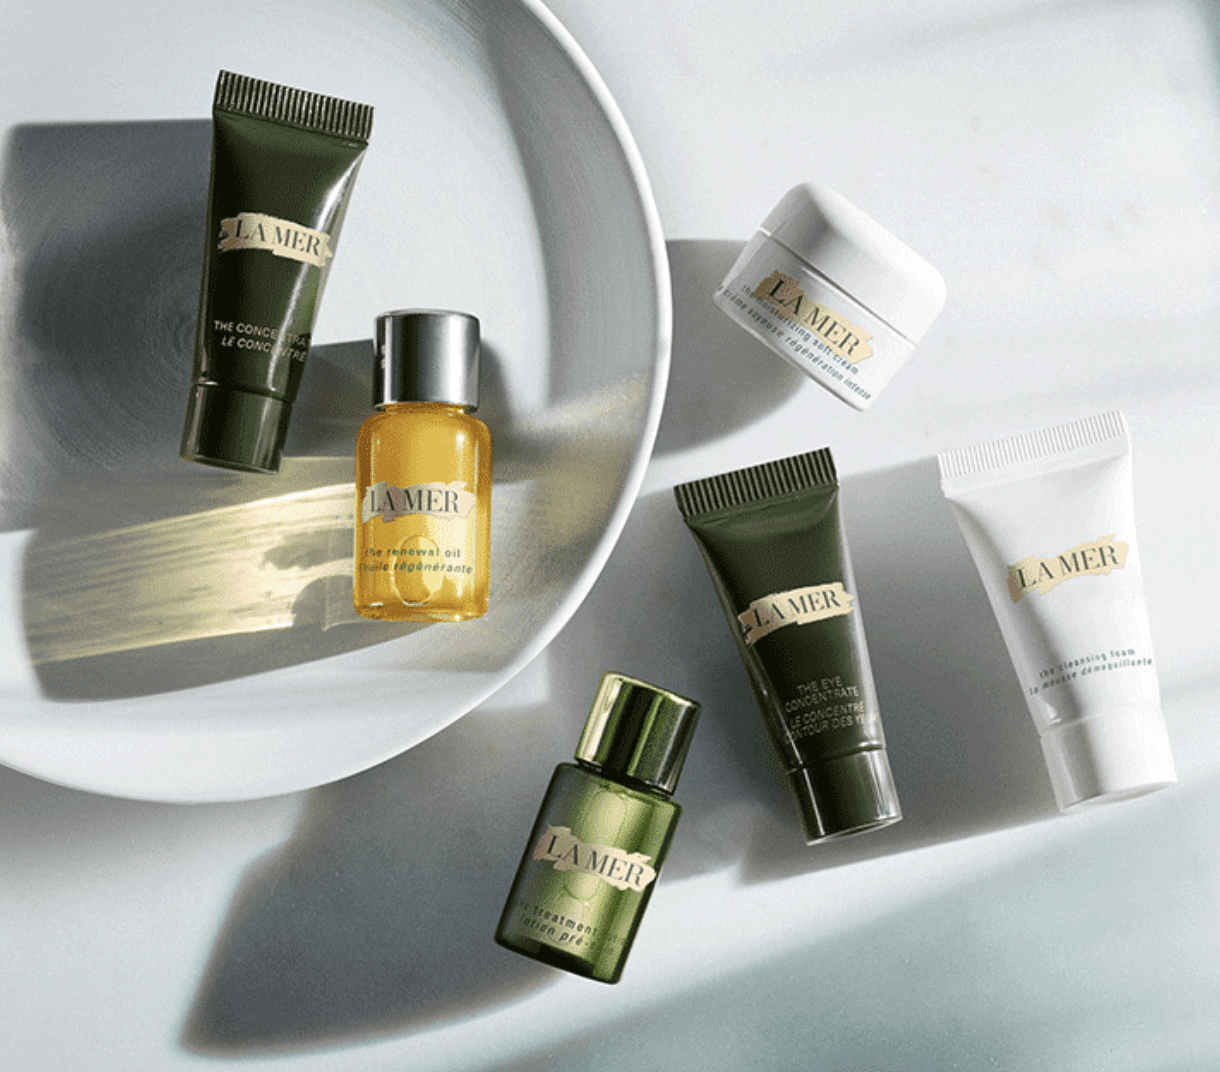 La Mer: 5 Minis with 0 purchase